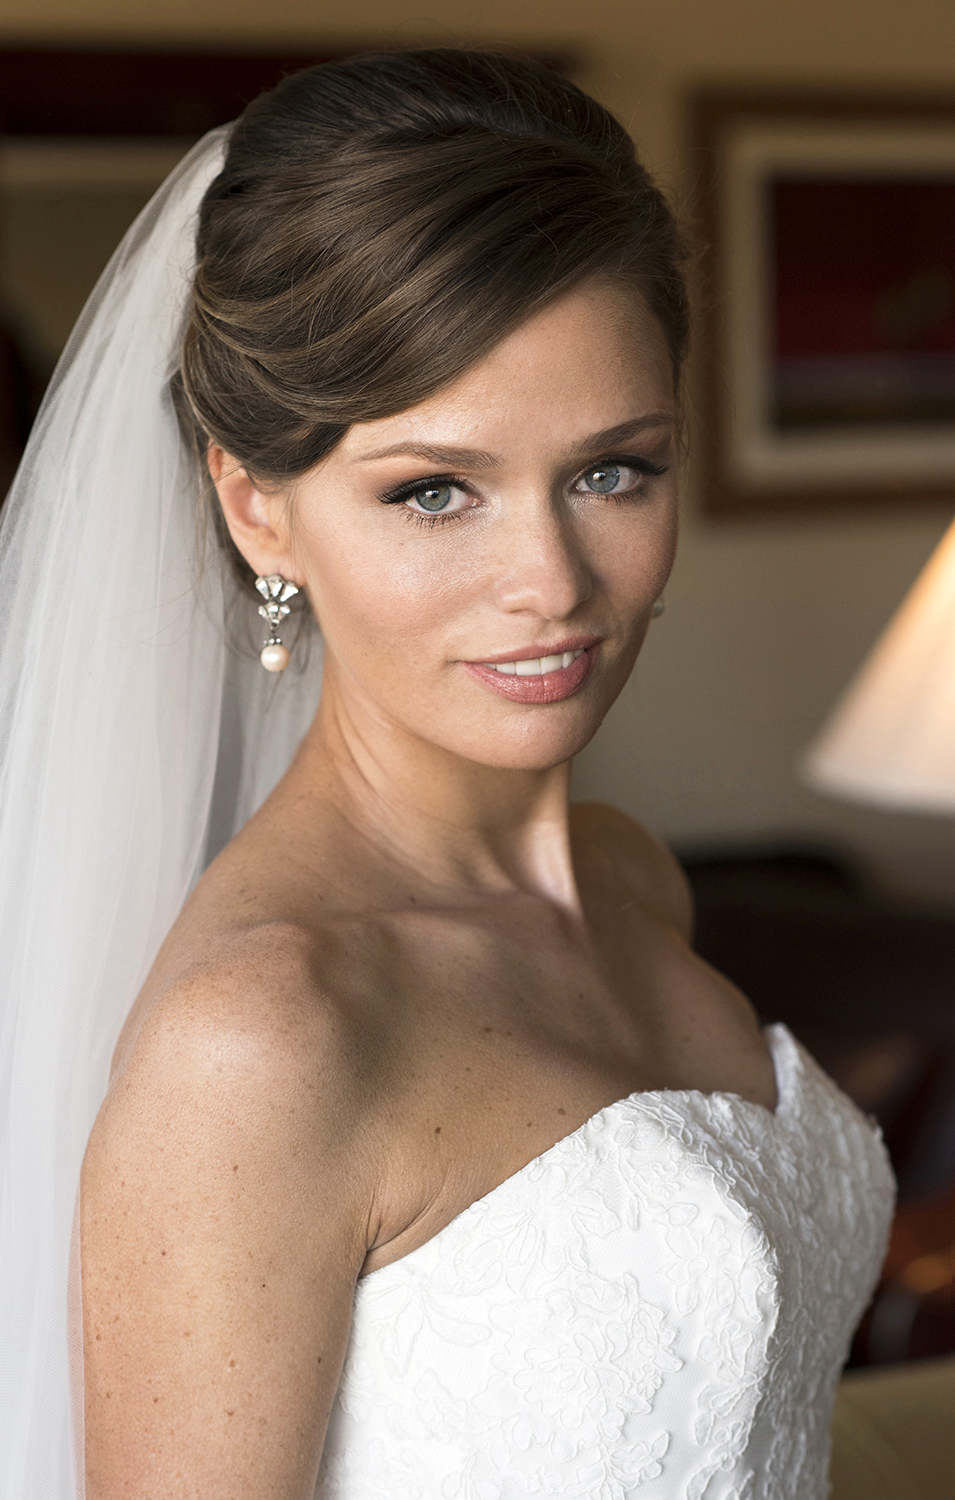 Bridal makeup updo blue eyes brunette by Agne Skaringa Beauty Affair and A.jpg